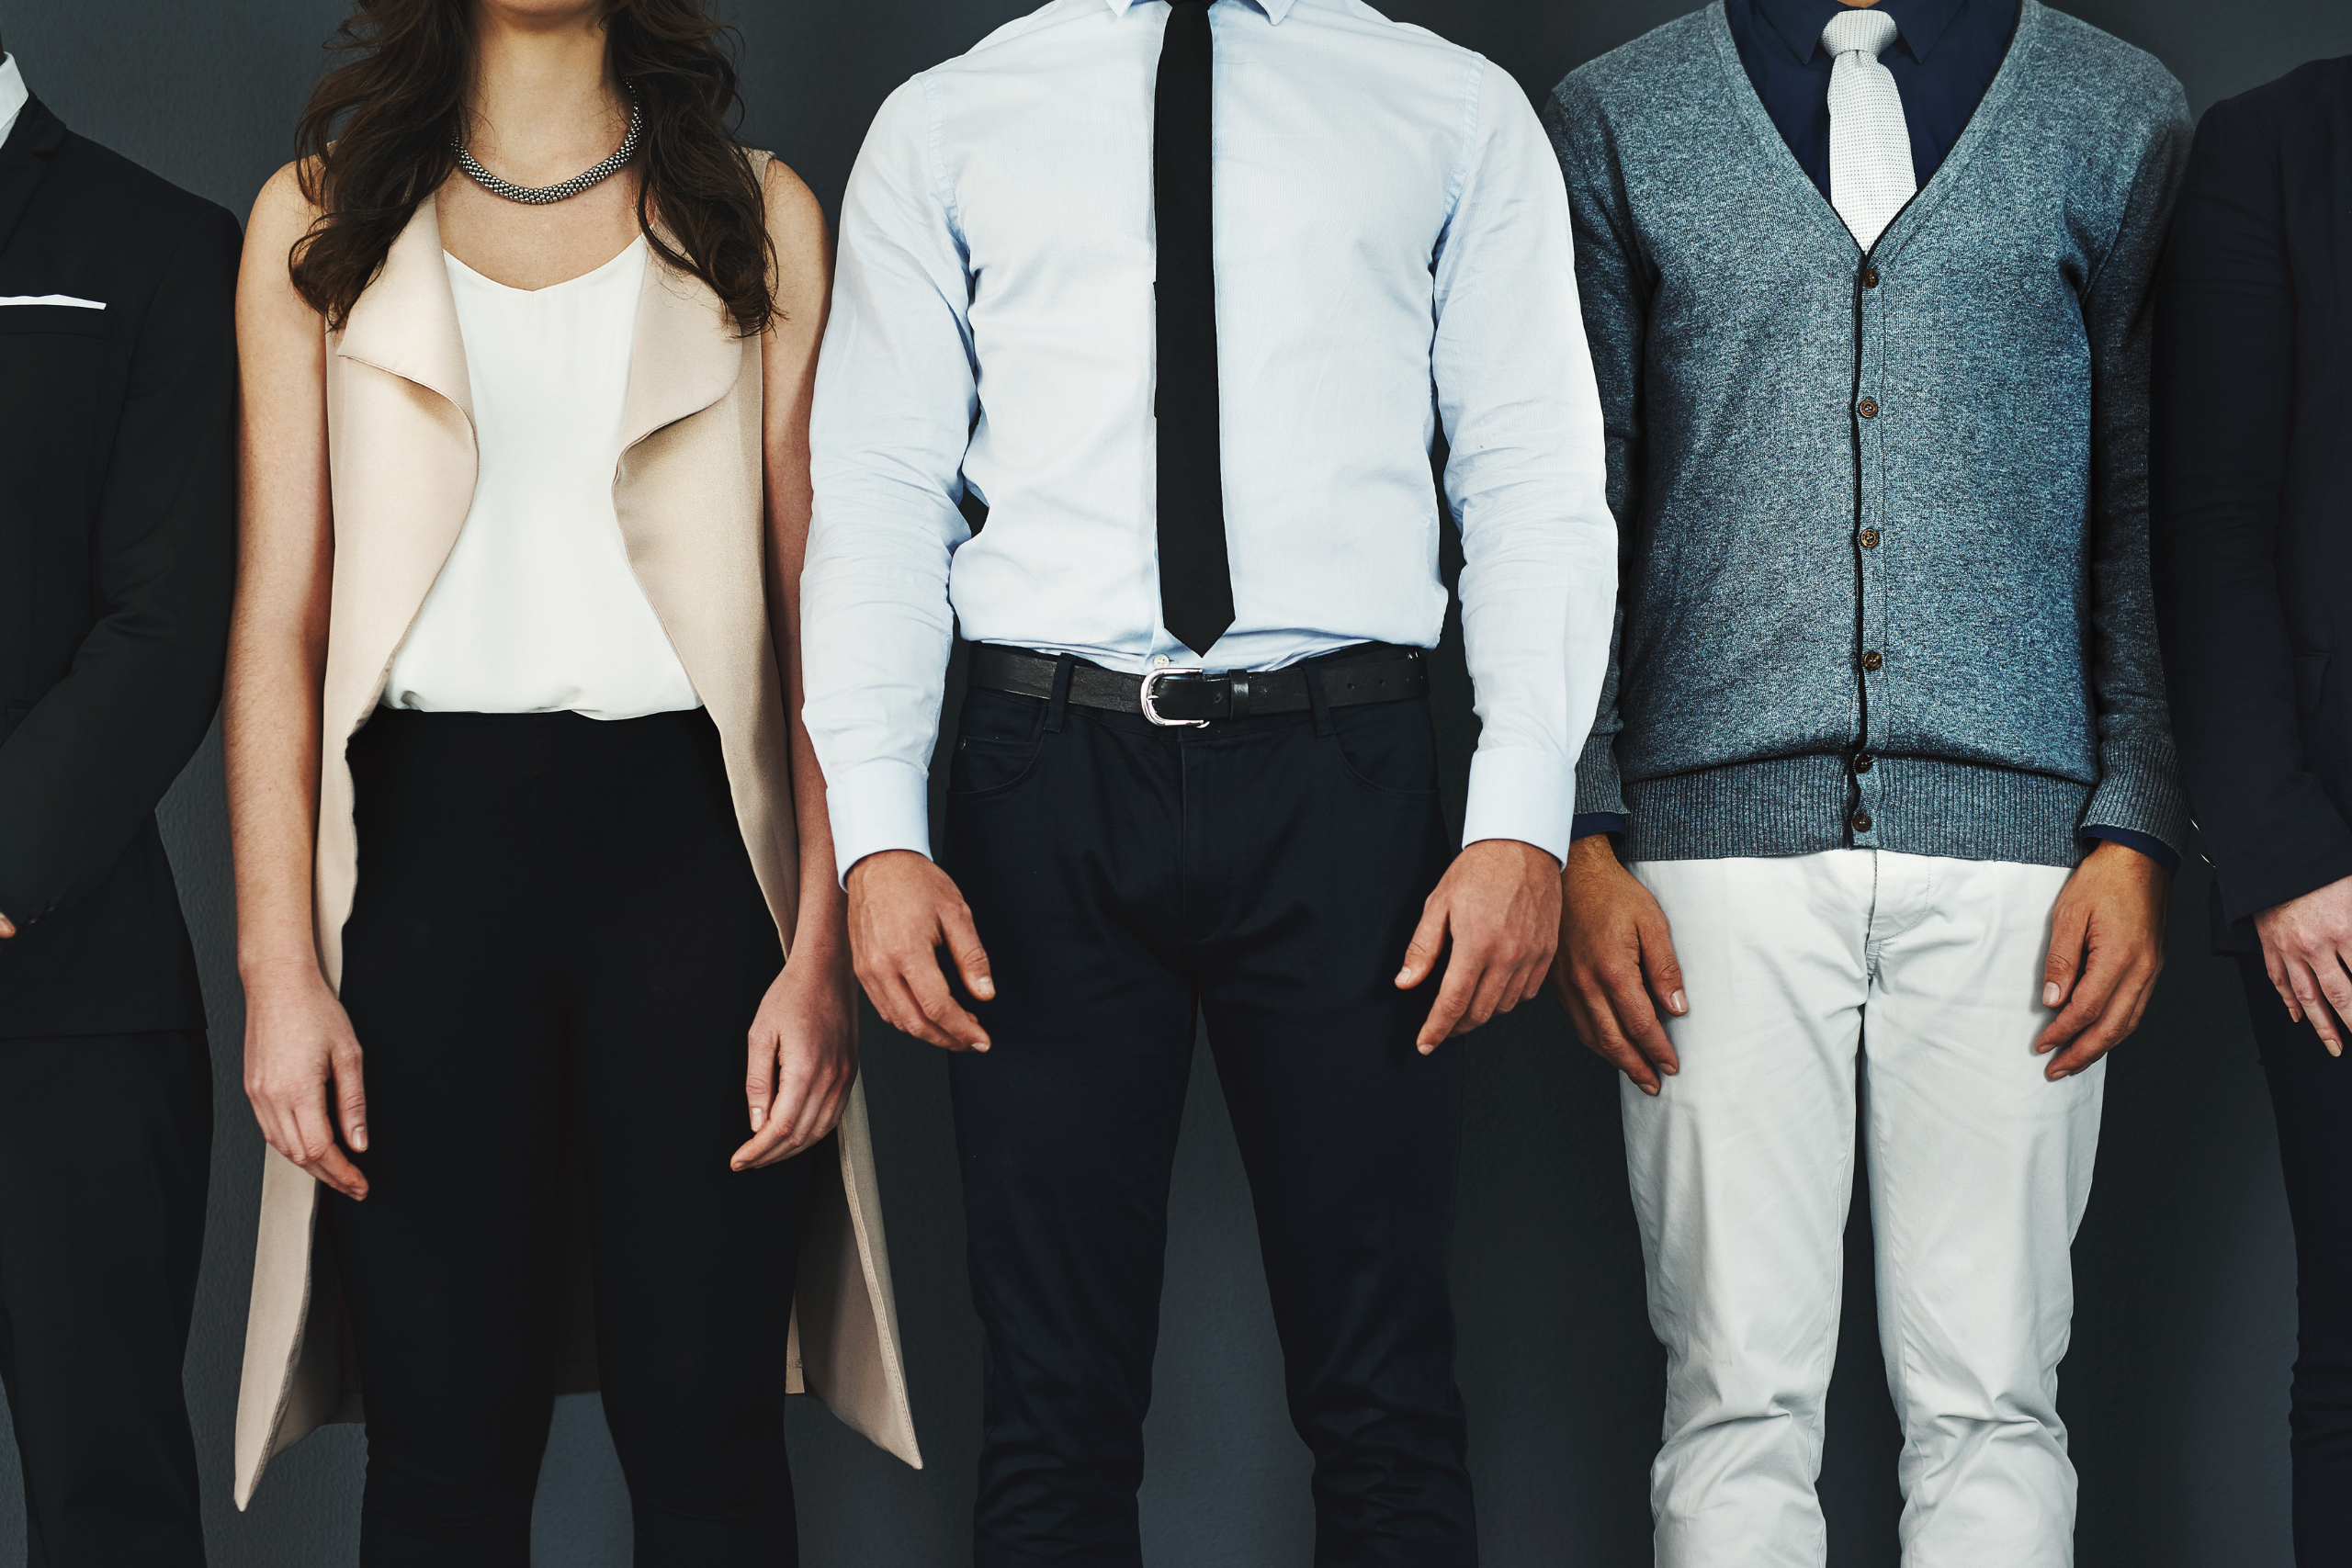 Newly Promoted Managers: Five Ways Companies Are Failing Them